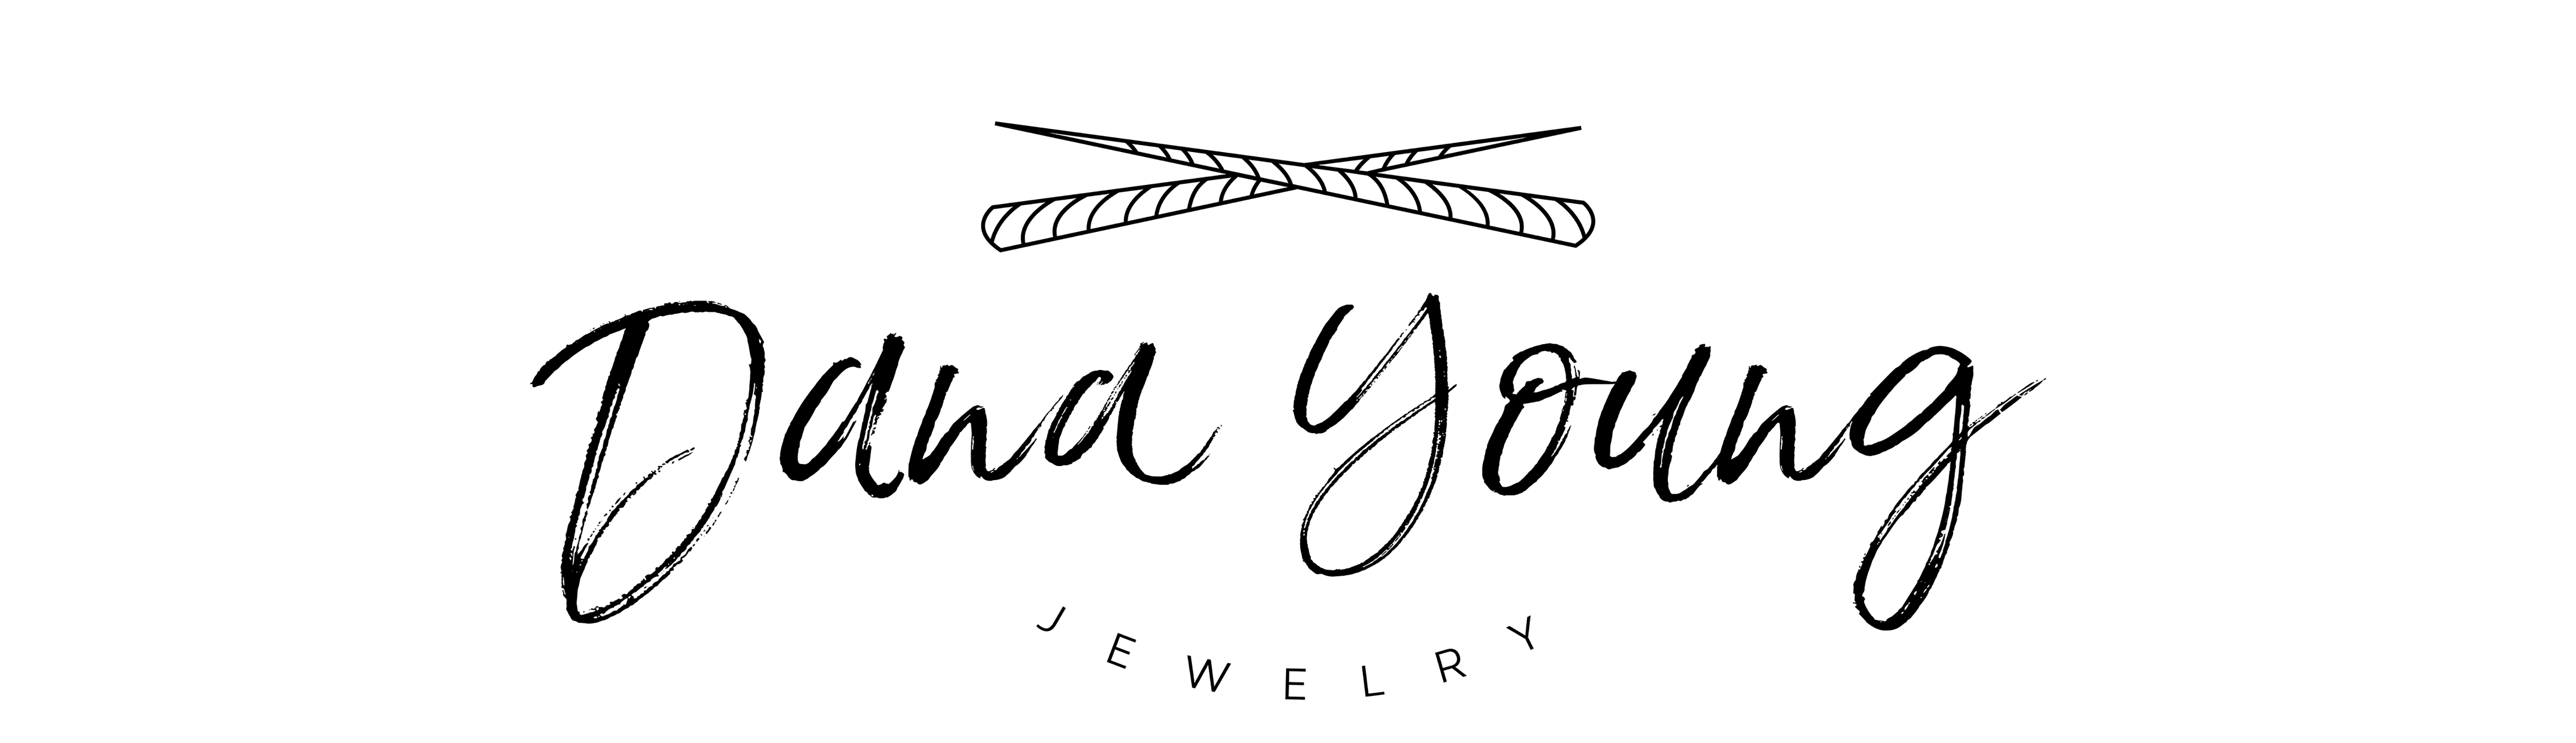 Dana Young Jewelry